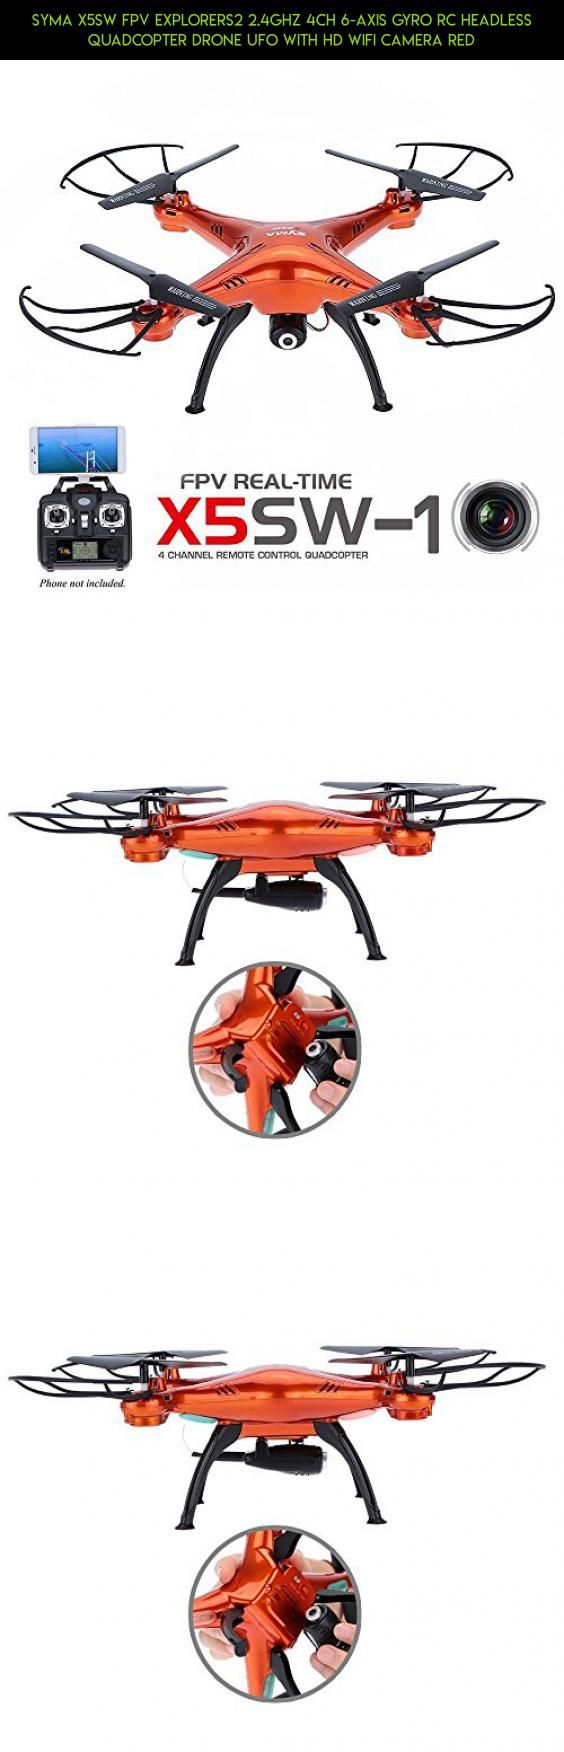 Syma X5SW FPV Explorers2 2.4Ghz 4CH 6-Axis Gyro RC Headless Quadcopter Drone UFO with HD Wifi Camera Red #camera #with #racing #technology #tech #syma #remote #gadgets #camera #fpv #control #kit #shopping #x5sw #drone #2.4g #products #quadcopter #plans #wi-fi #parts